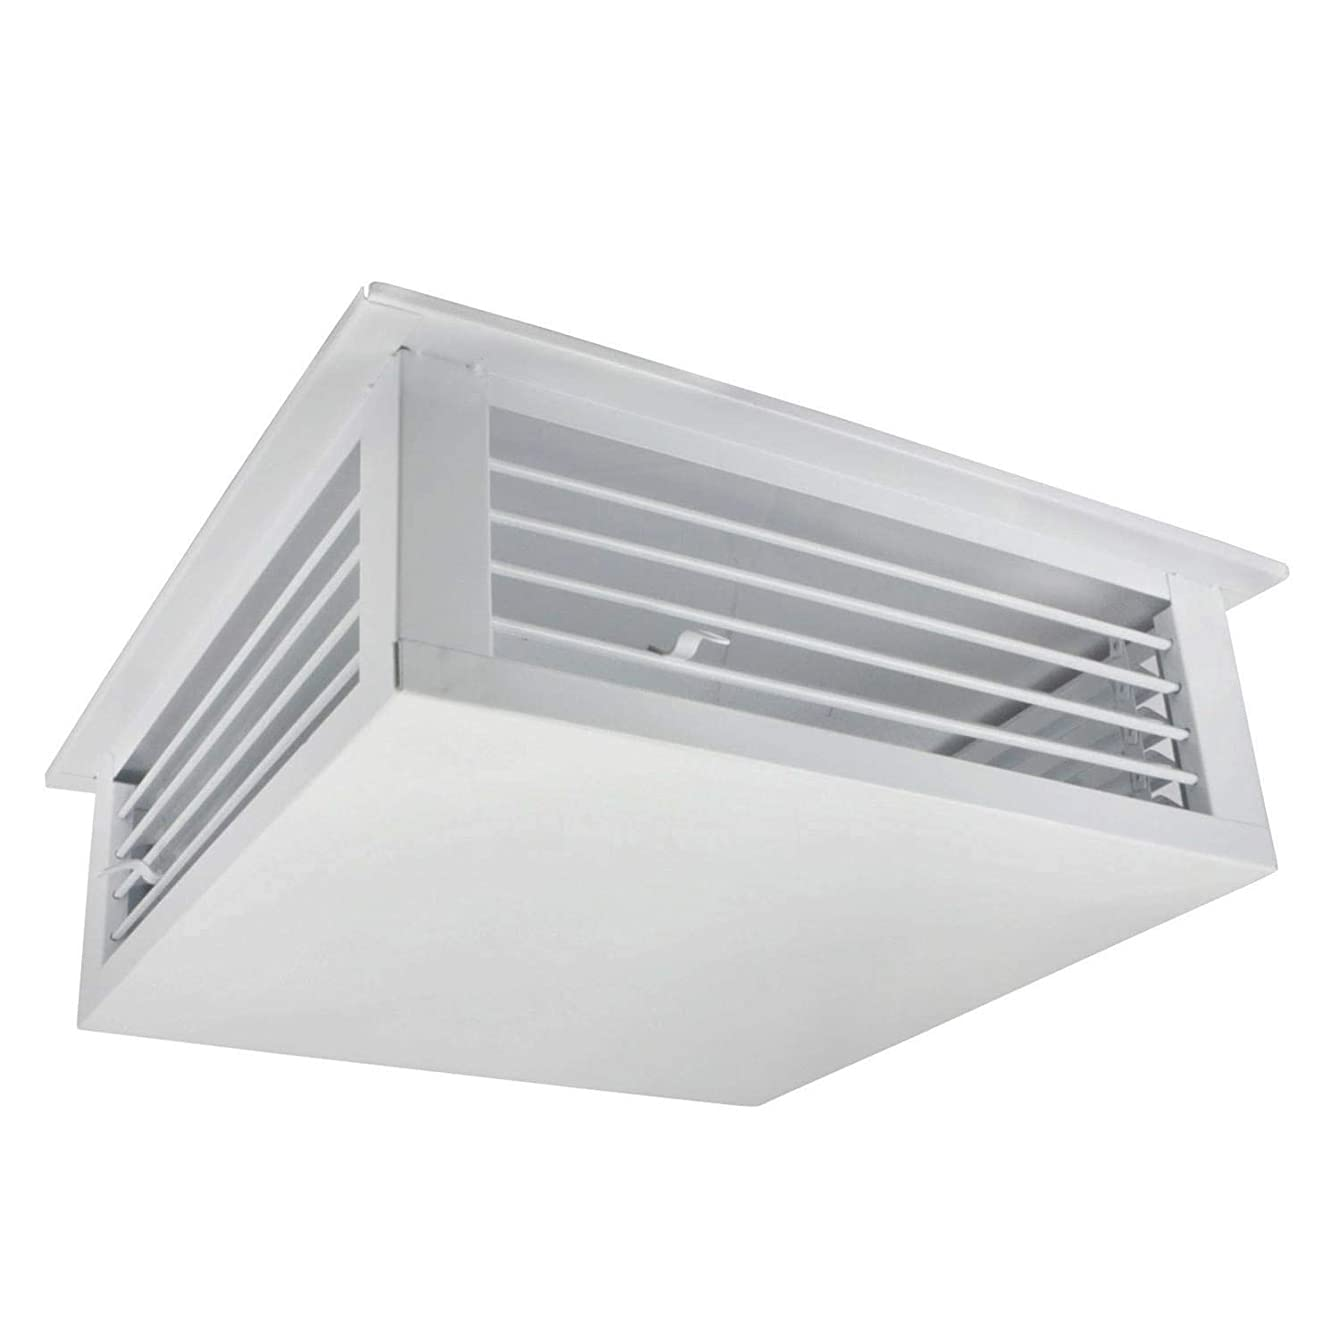 GSW DF-24P 24-Inch White Powder Coated 4-Way Adjustable Metal Diffuser for Evaporative/Swamp Cooler (Renewed)